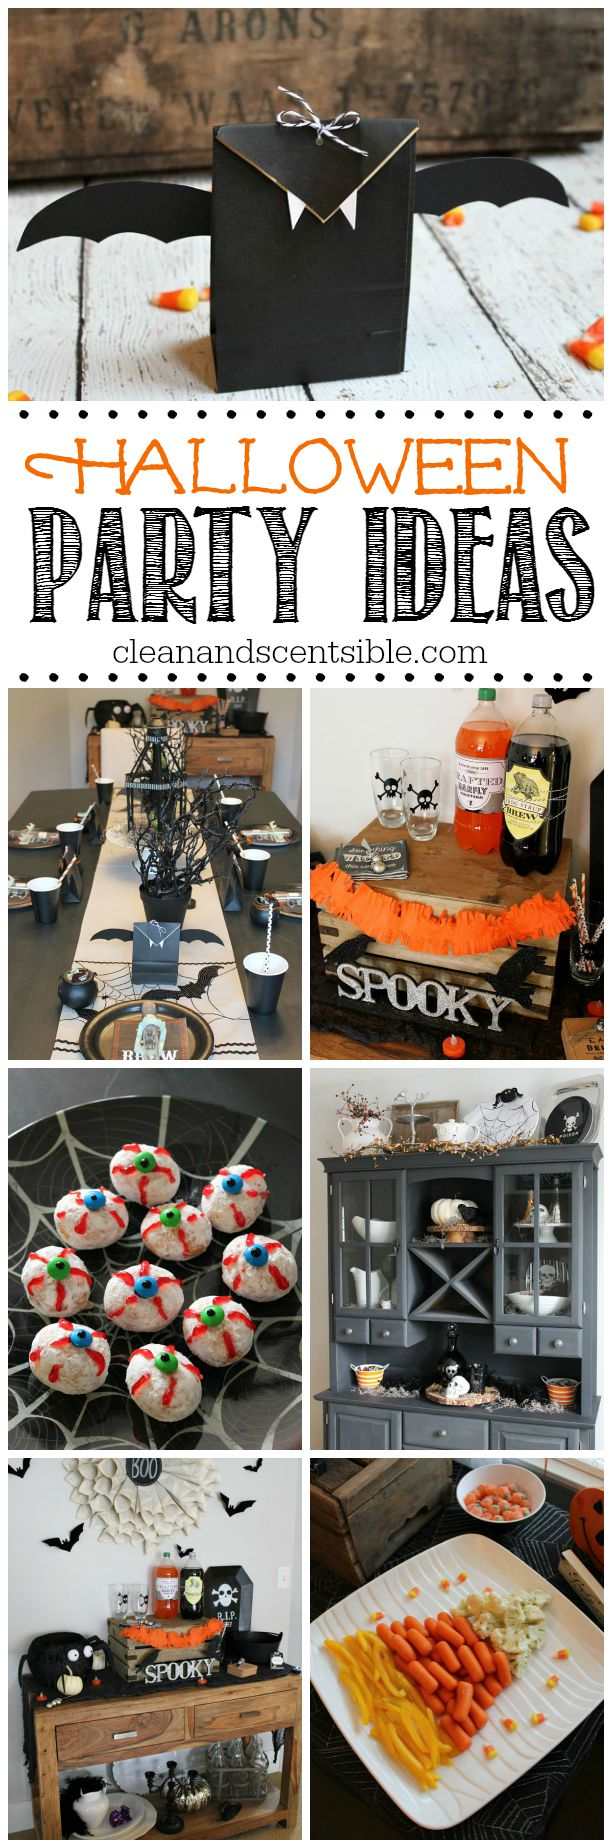 Halloween Party Ideas - Clean and Scentsible